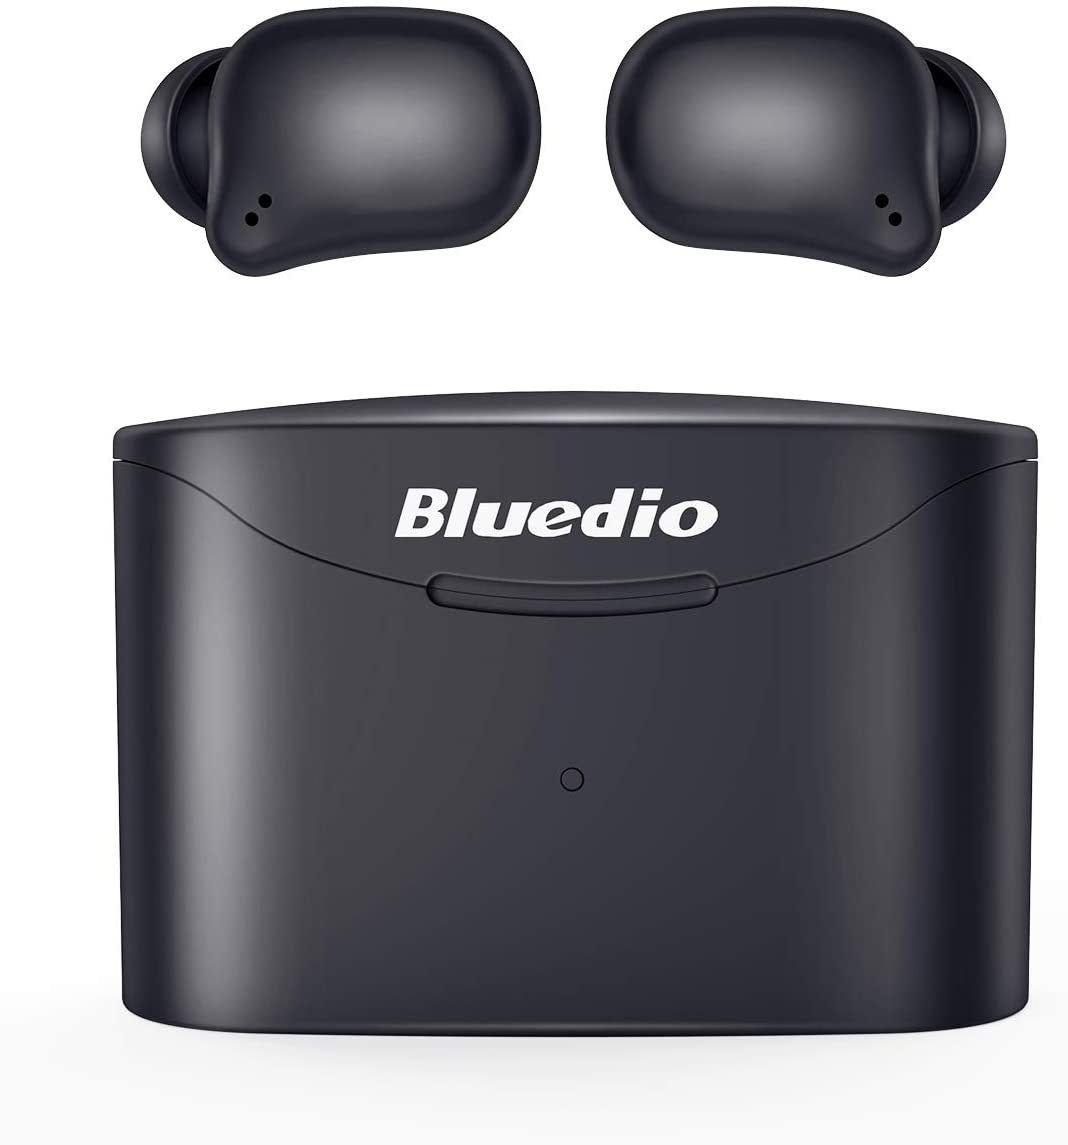 Bluetooth 5.0 Wireless Earbuds, Bluedio T Elf 2 True Wireless Touch Headphones in-Ear Earphones with Charging Case, Mini Car Headset Built-in Mic for Cell Phone/Sports, 6Hrs Playtime, LED Indicator